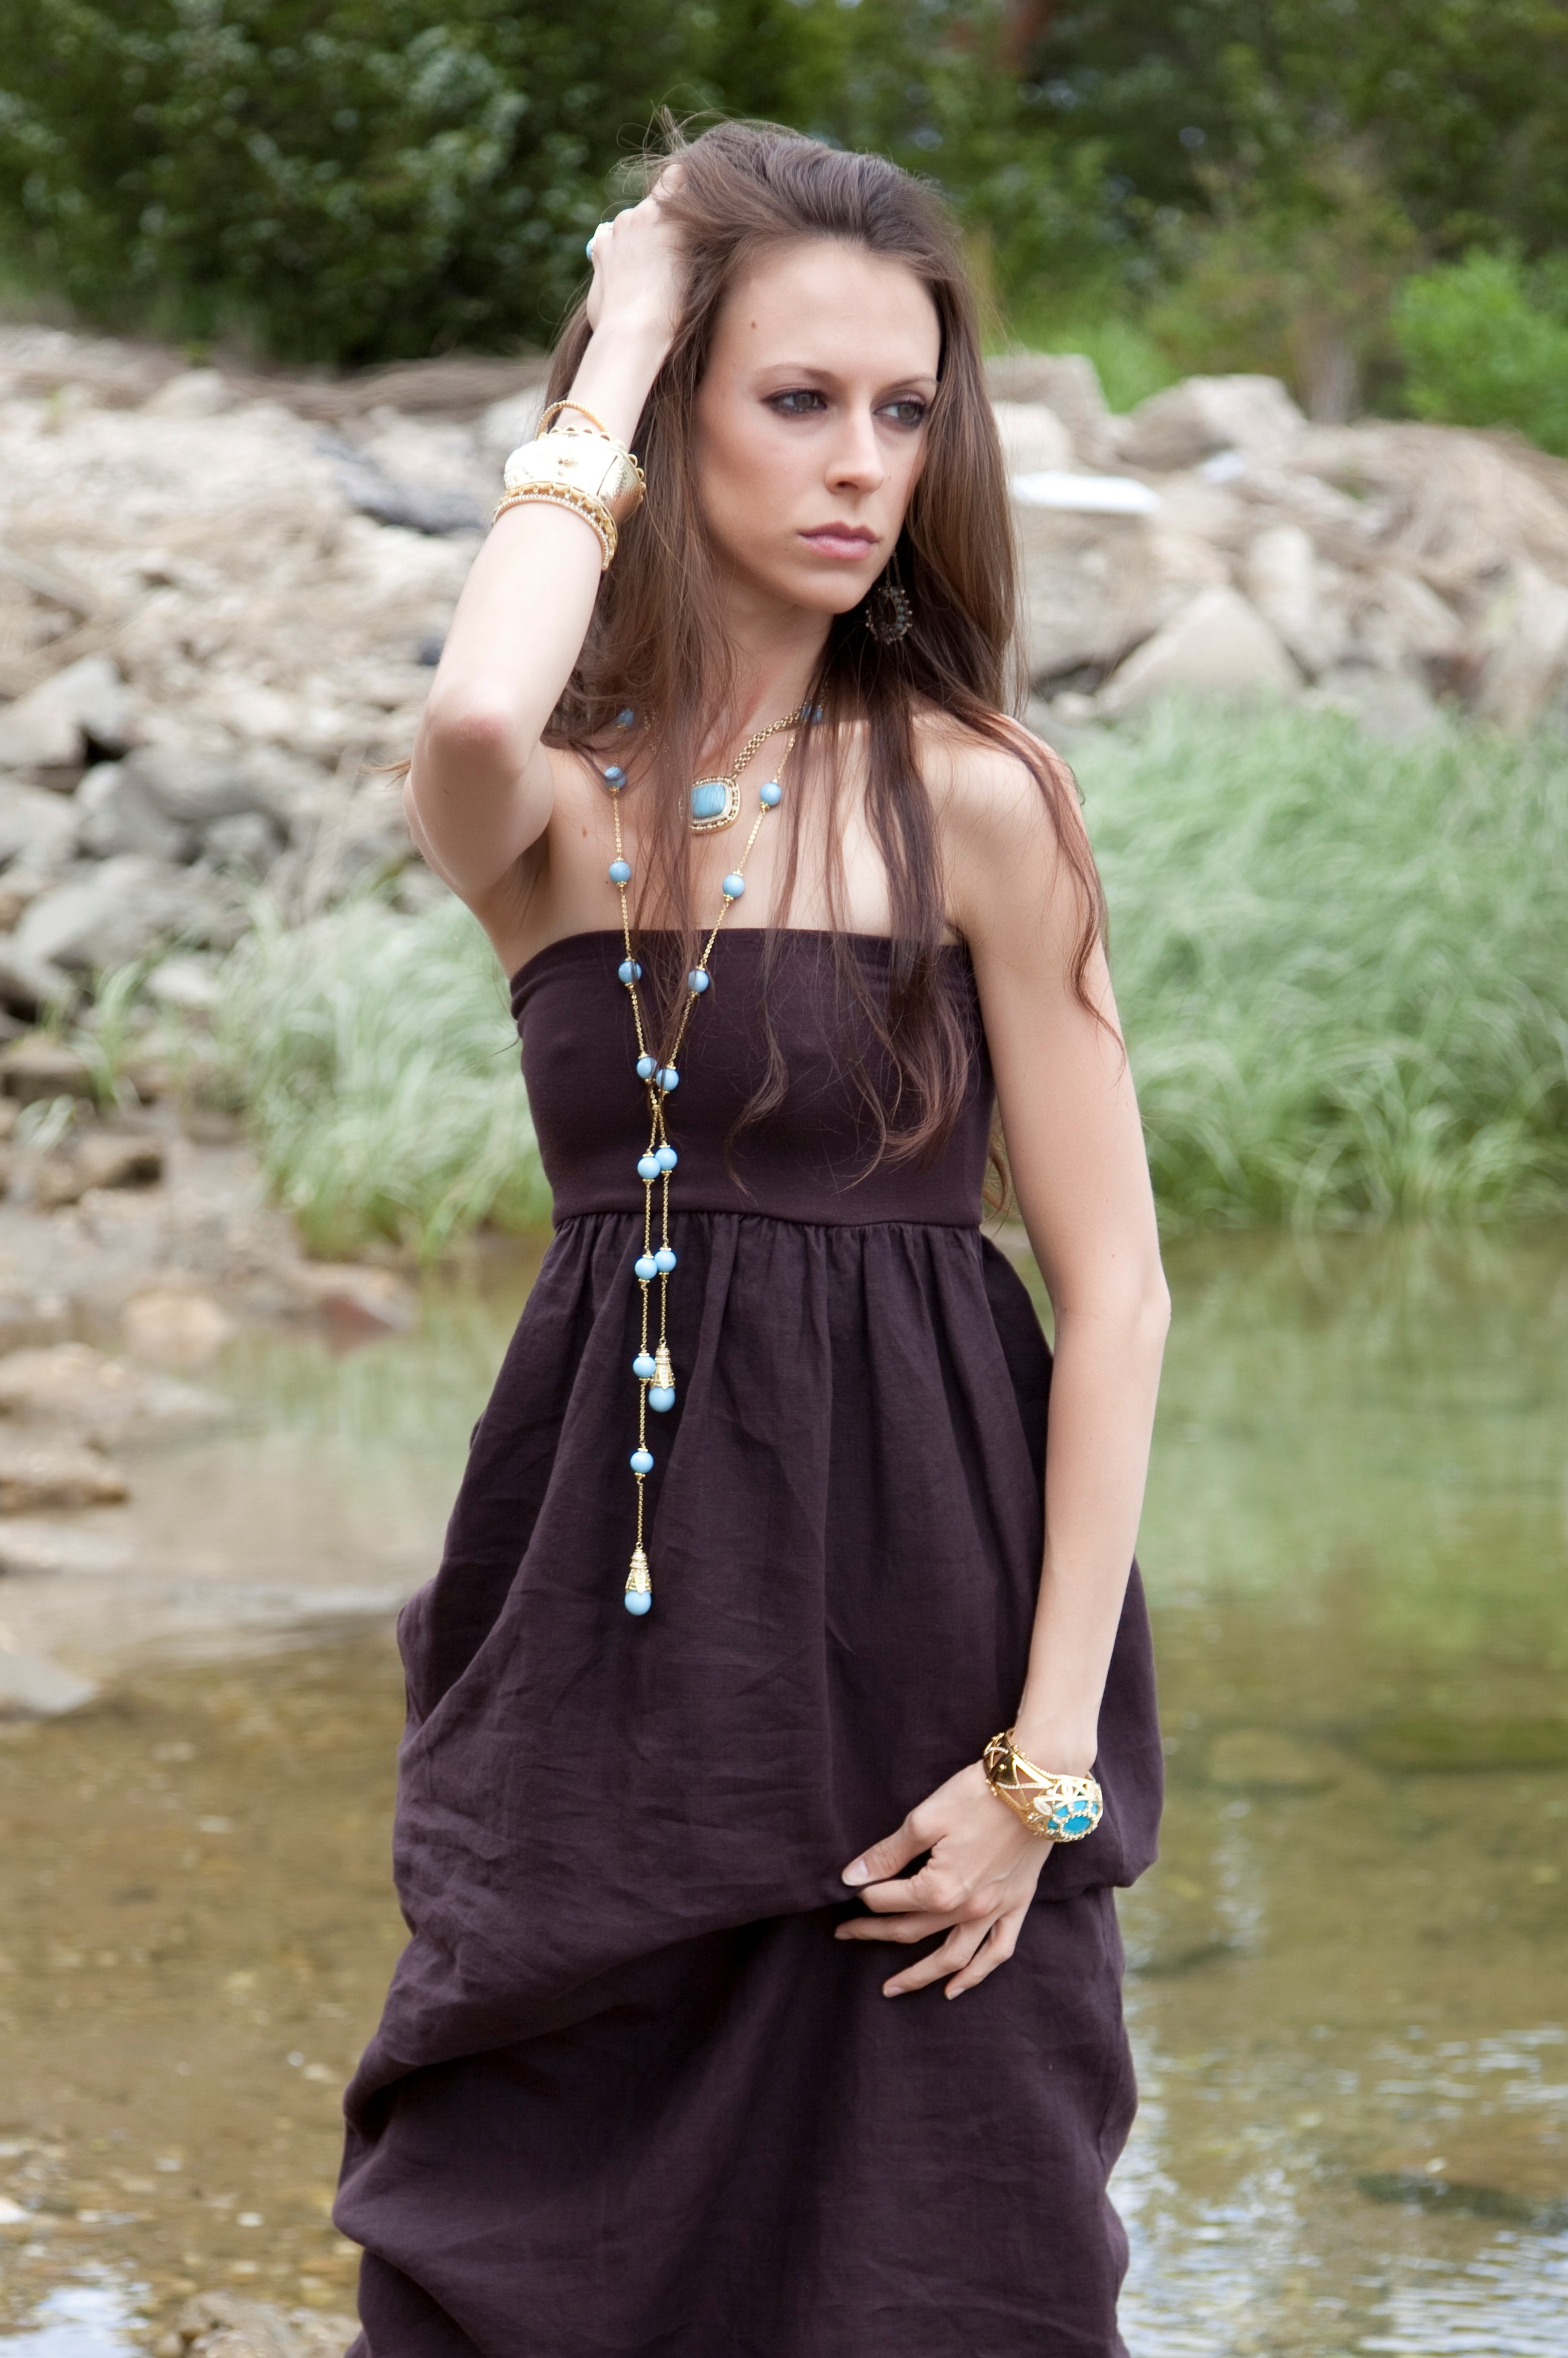 From the Doris Panos Fashion Collection featuring turquoise colored Fantasy Lariat & Honey Drop Necklace.